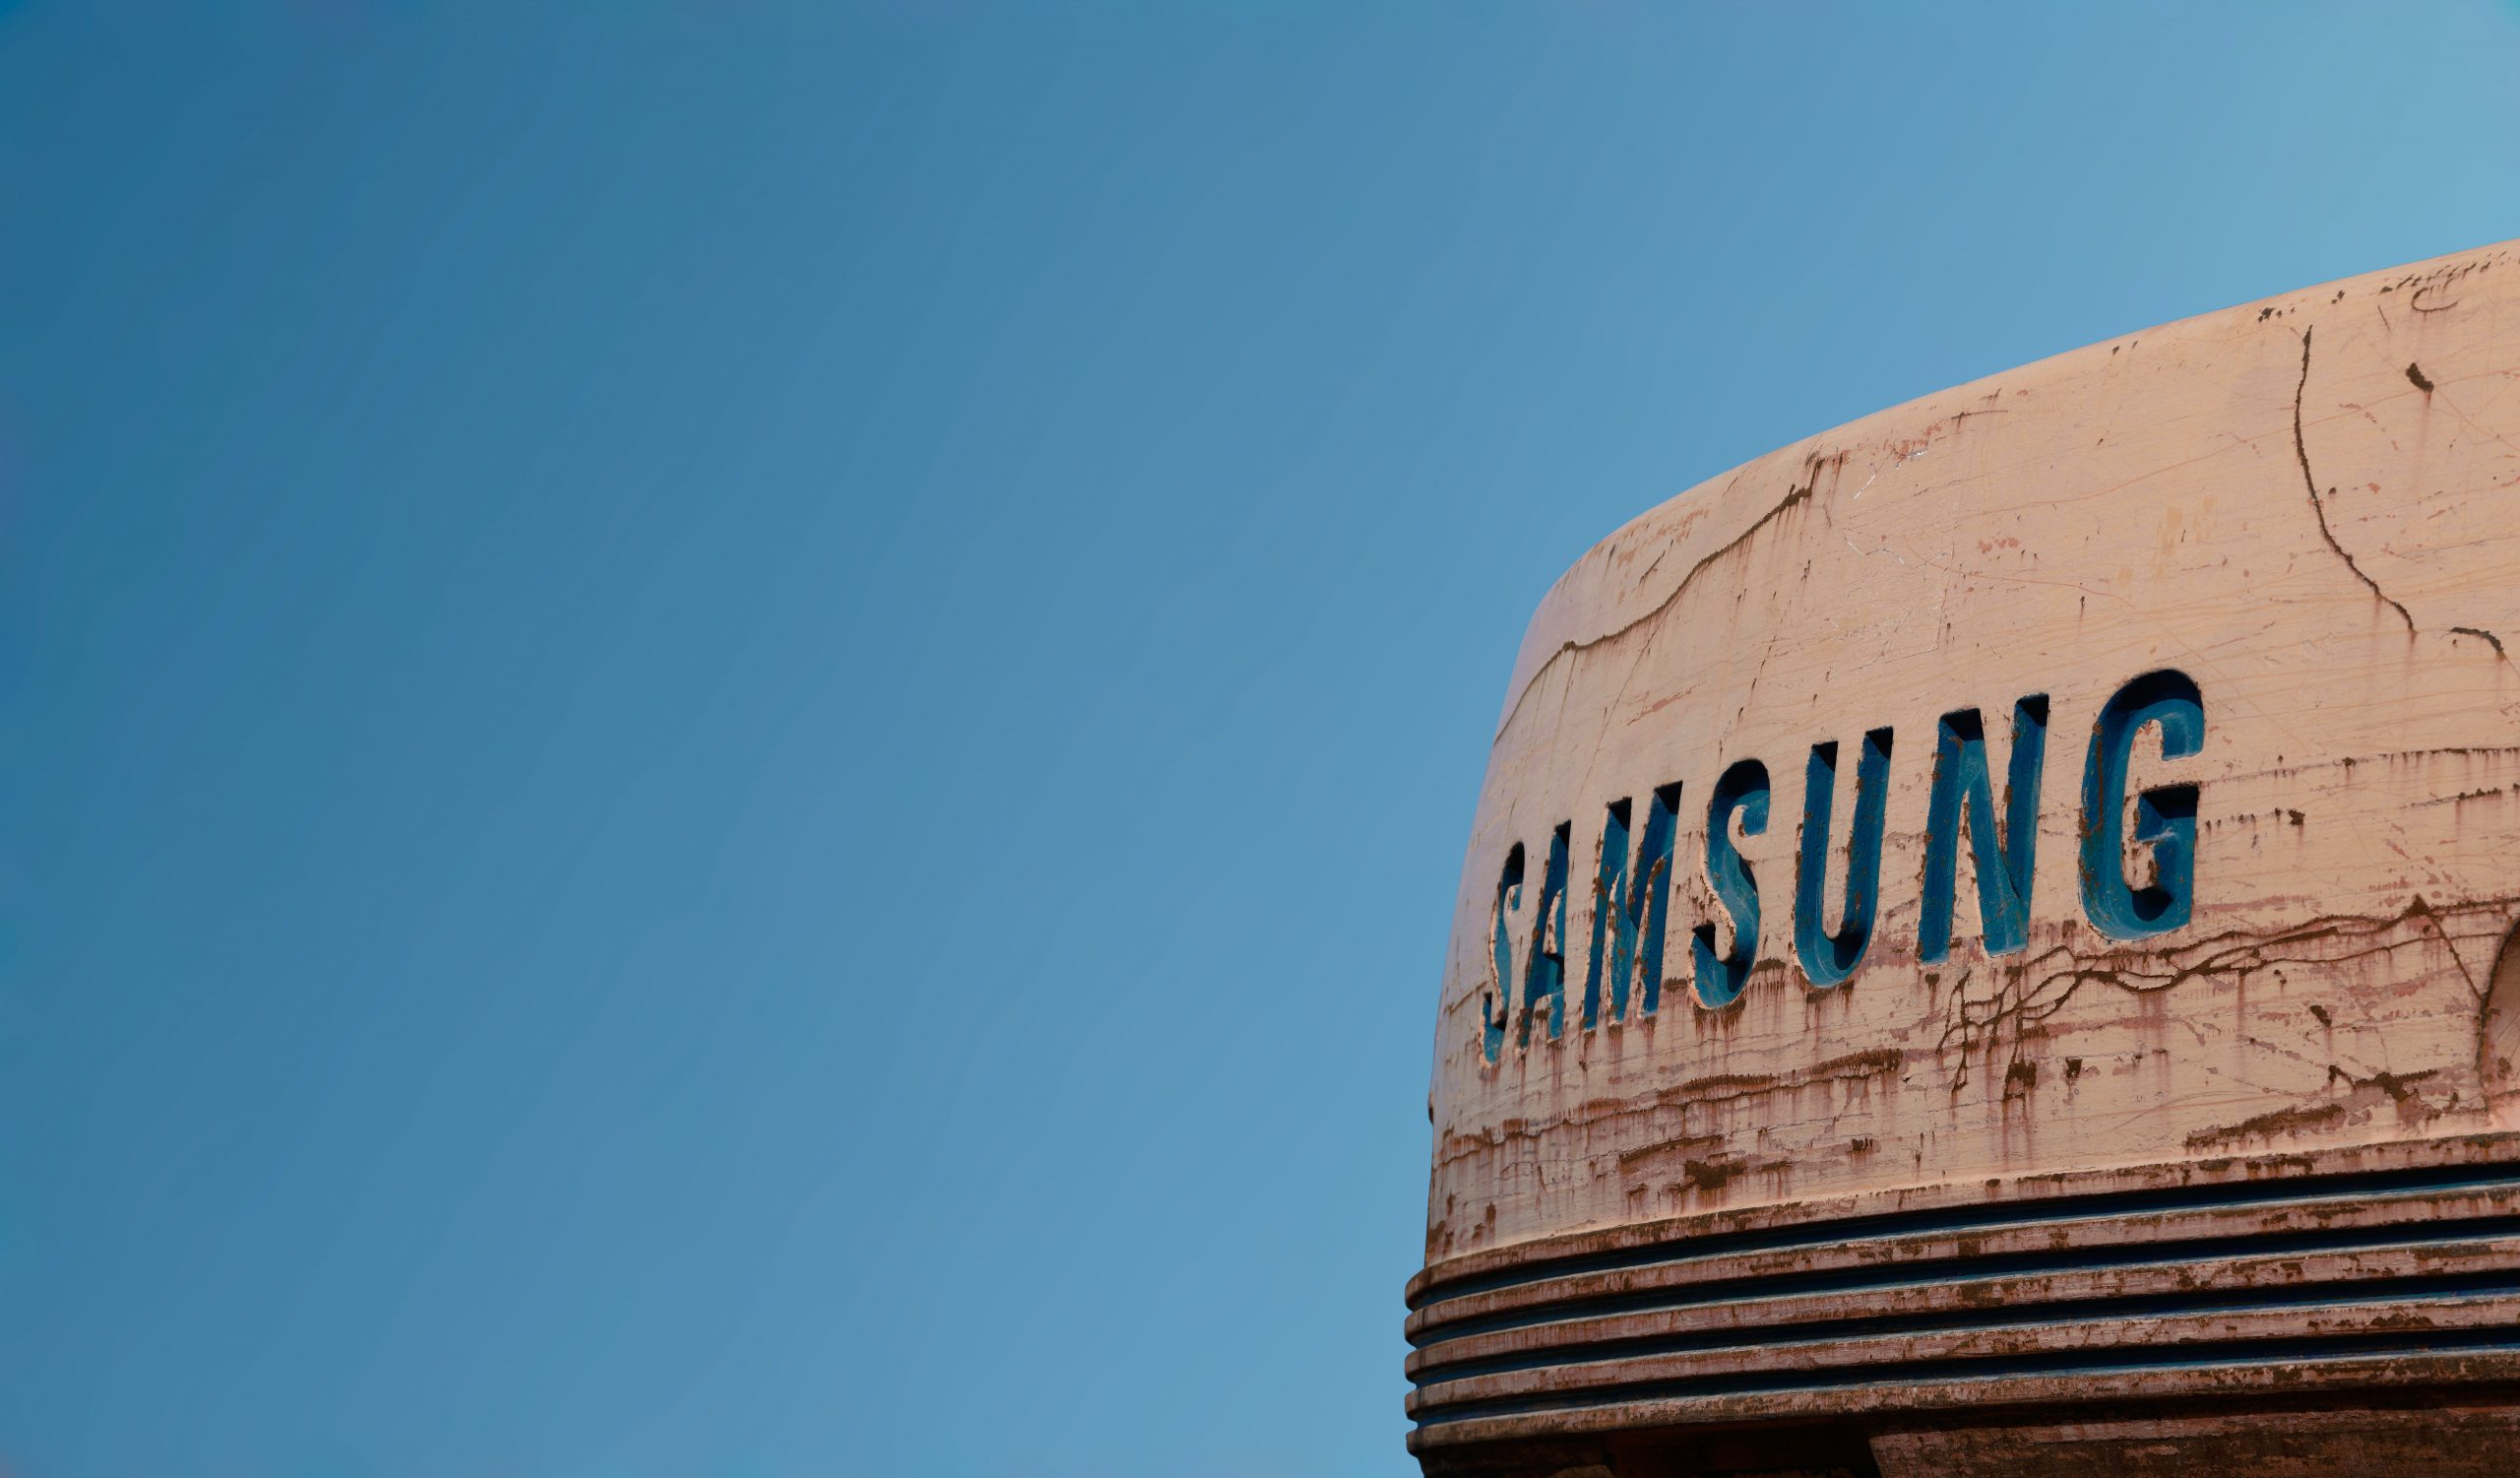 Samsung Manufacturing Plant in Pakistan